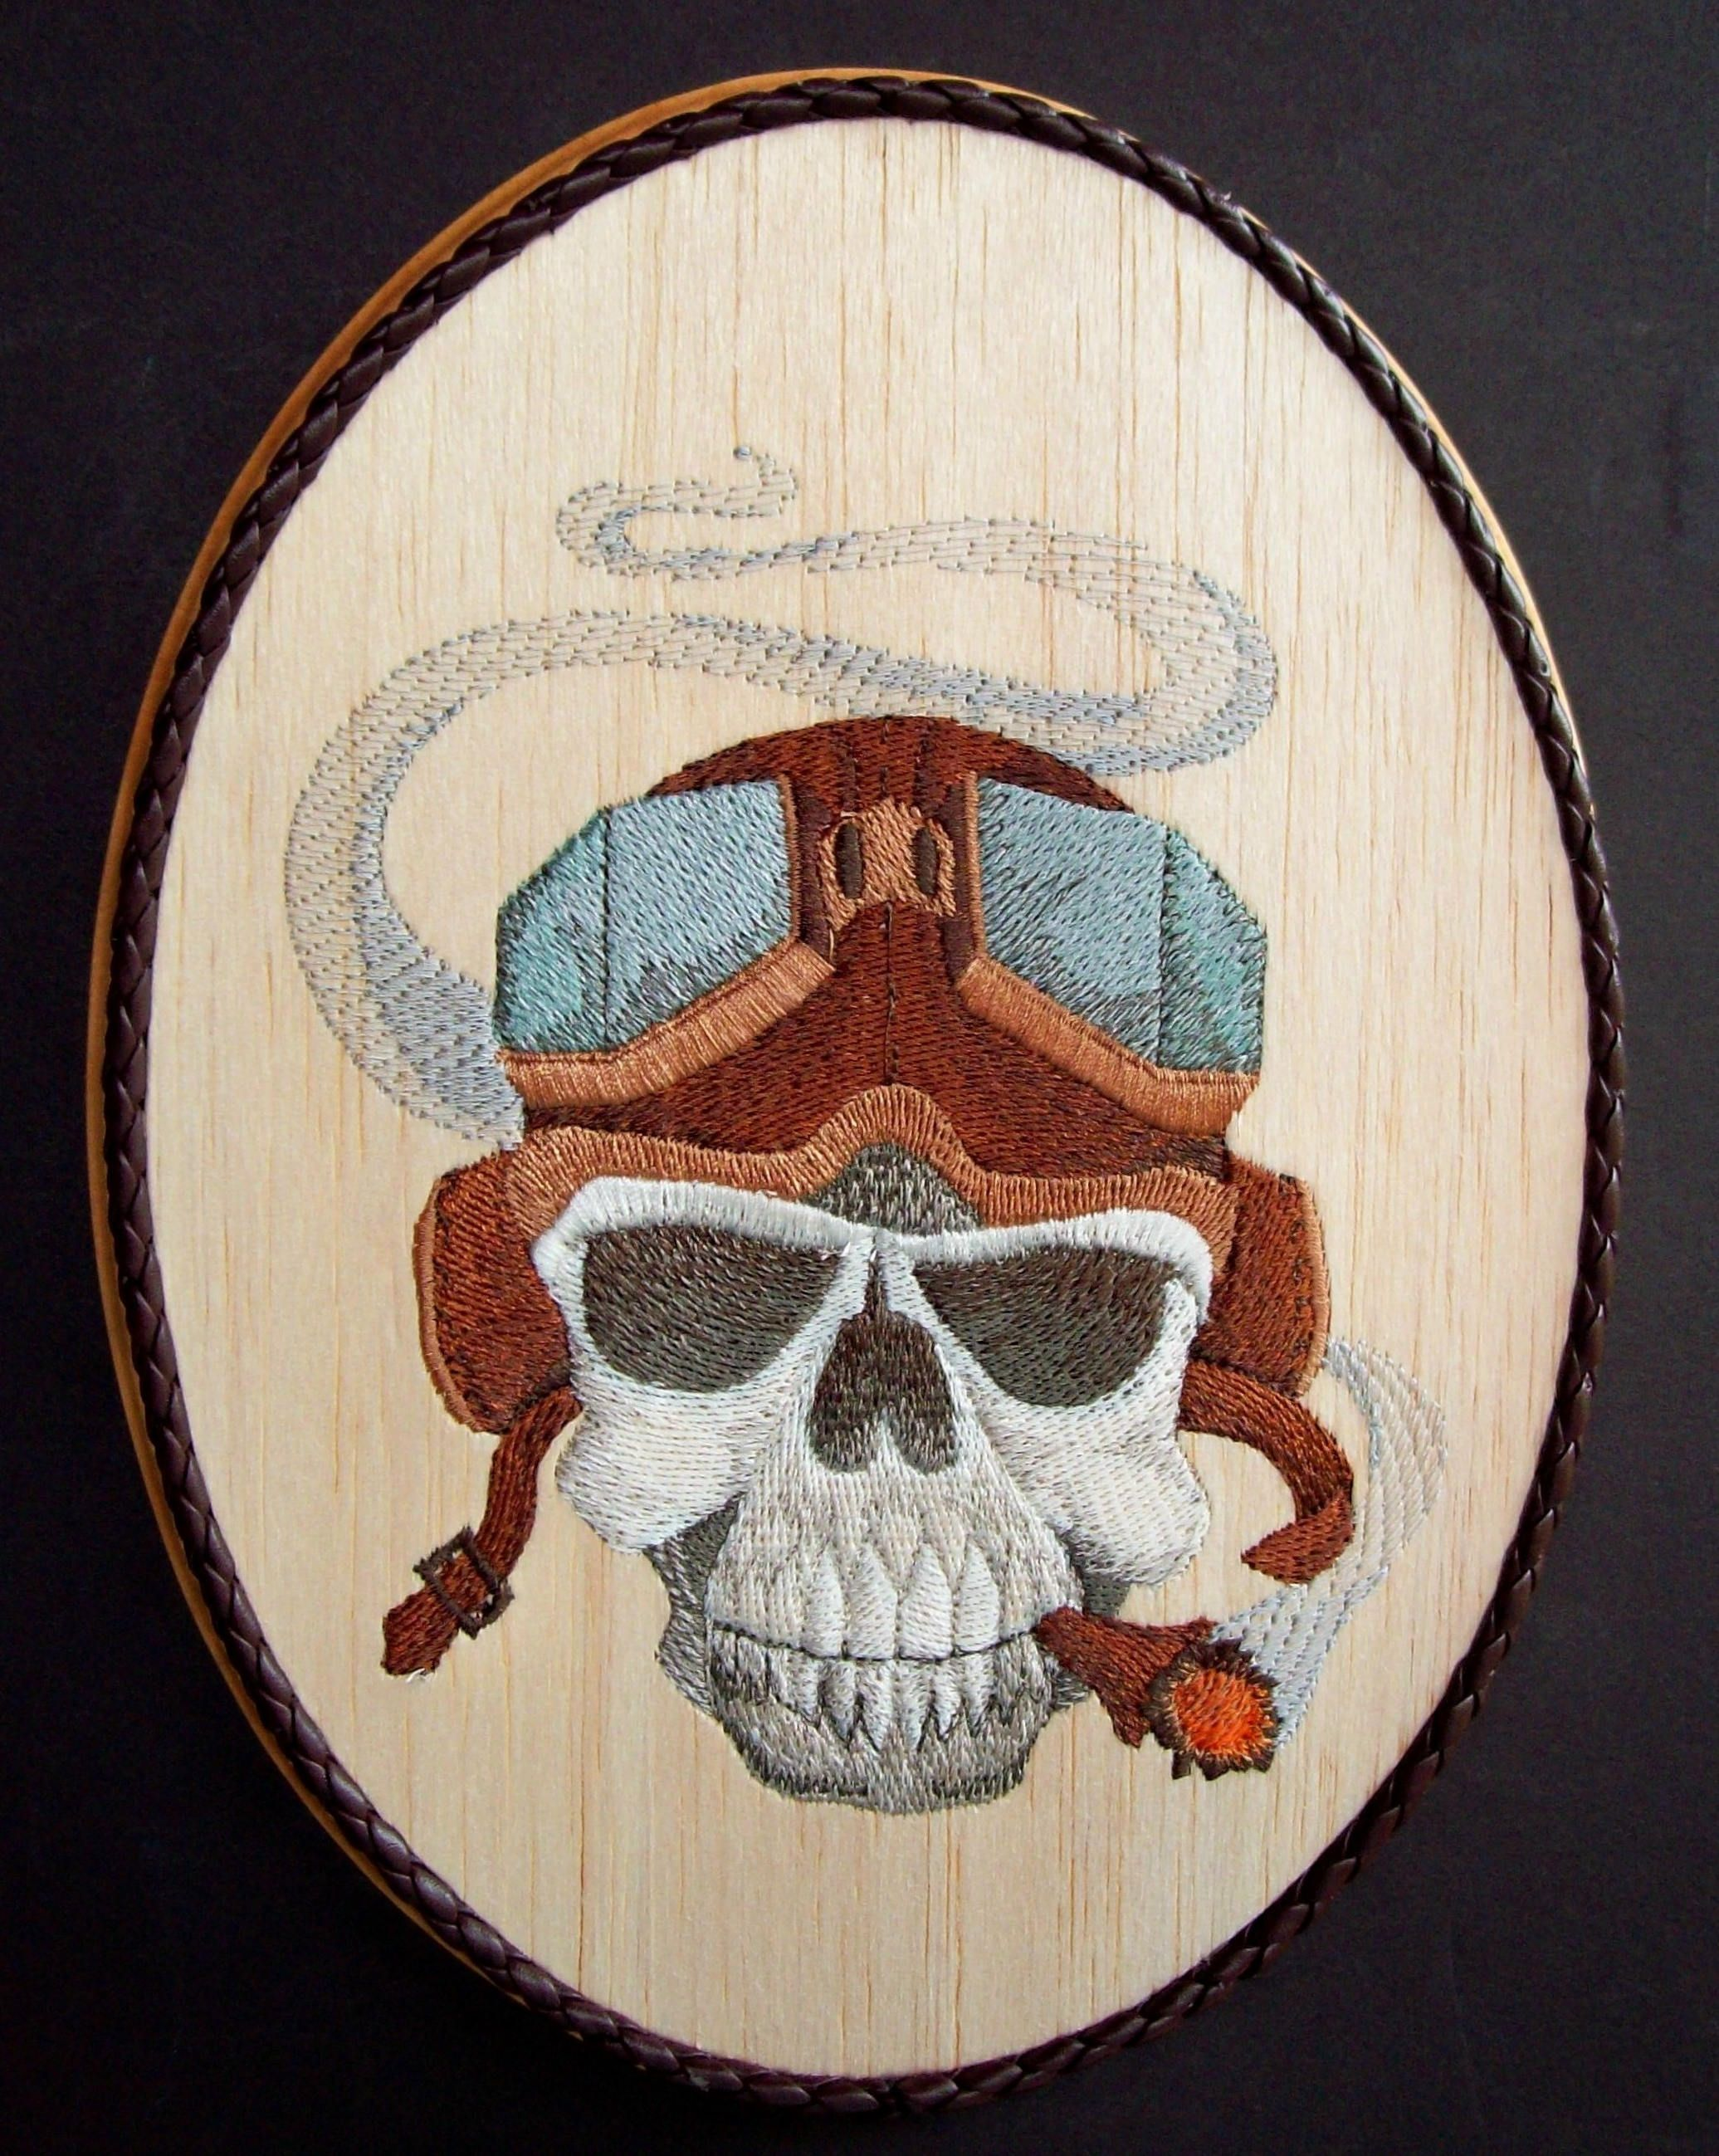 Skull Embroidery On Wood, Man Cave Decor, Steampunk Decor, Gothic